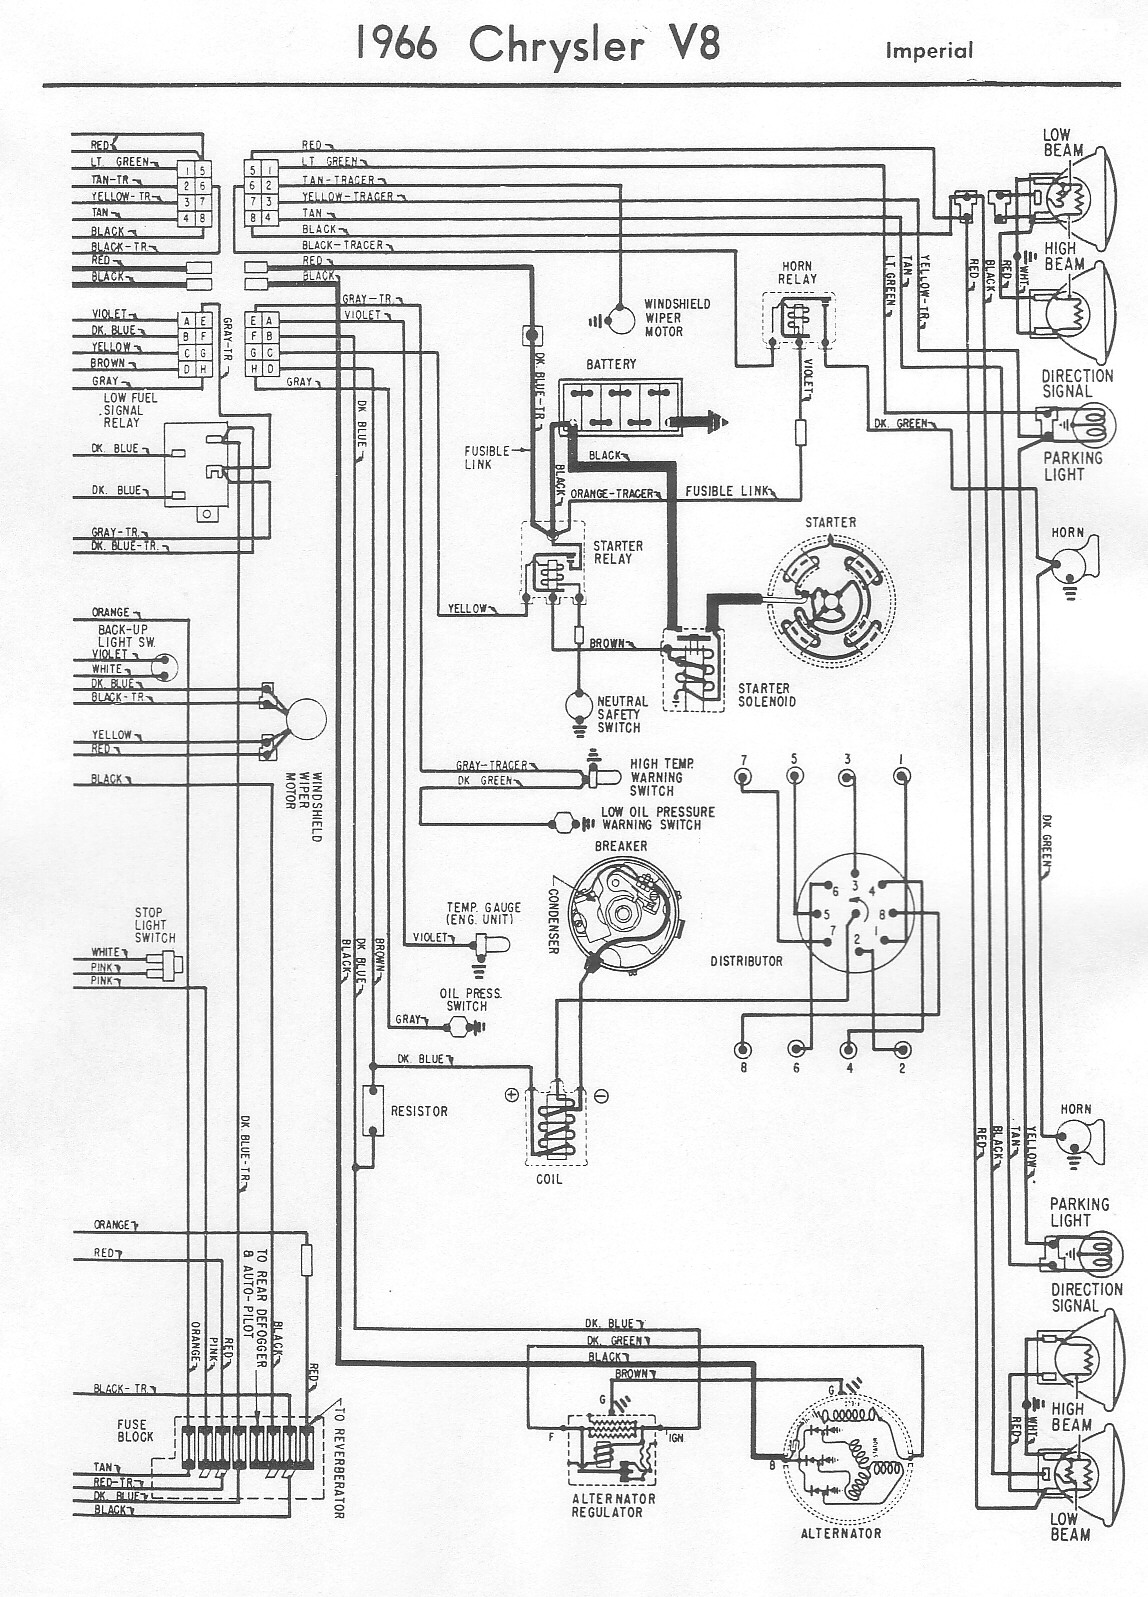 Free Auto Wiring Diagram: 1970 Plymouth Belvedere GTX, Road Runner, And Satellite Engine